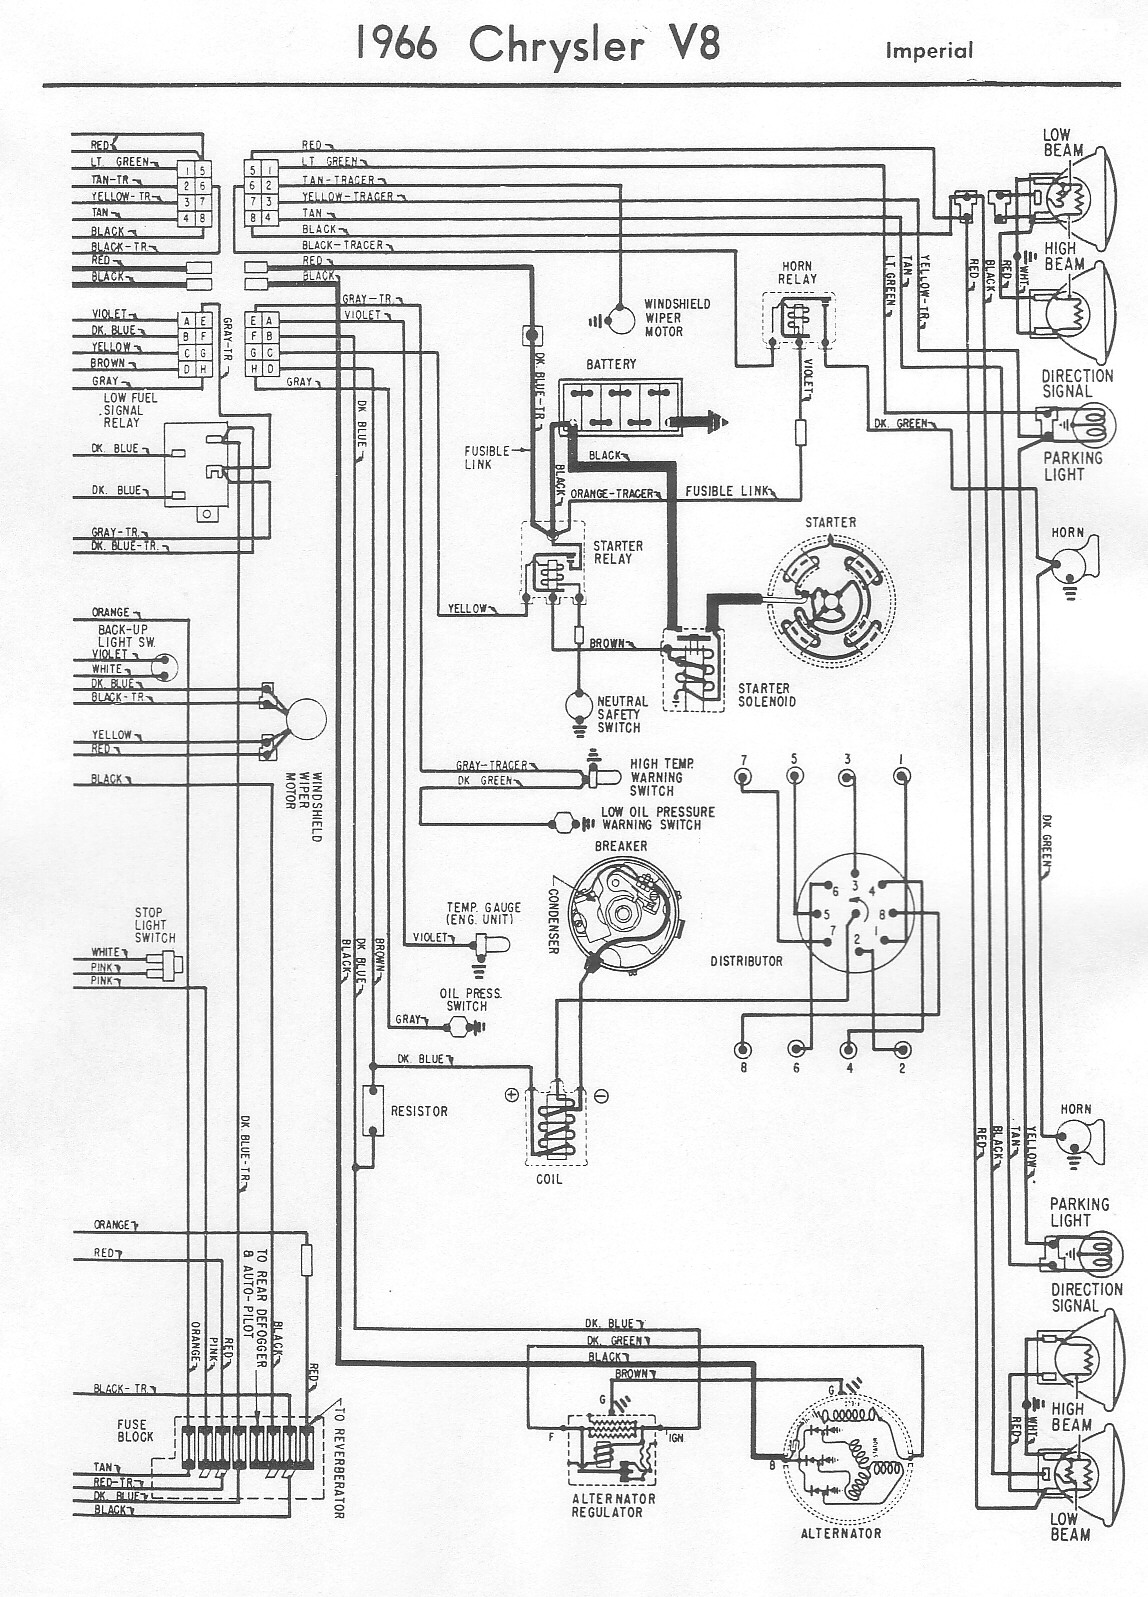 Free Auto Wiring Diagram: 1970 Plymouth Belvedere GTX, Road Runner, And Satellite Engine